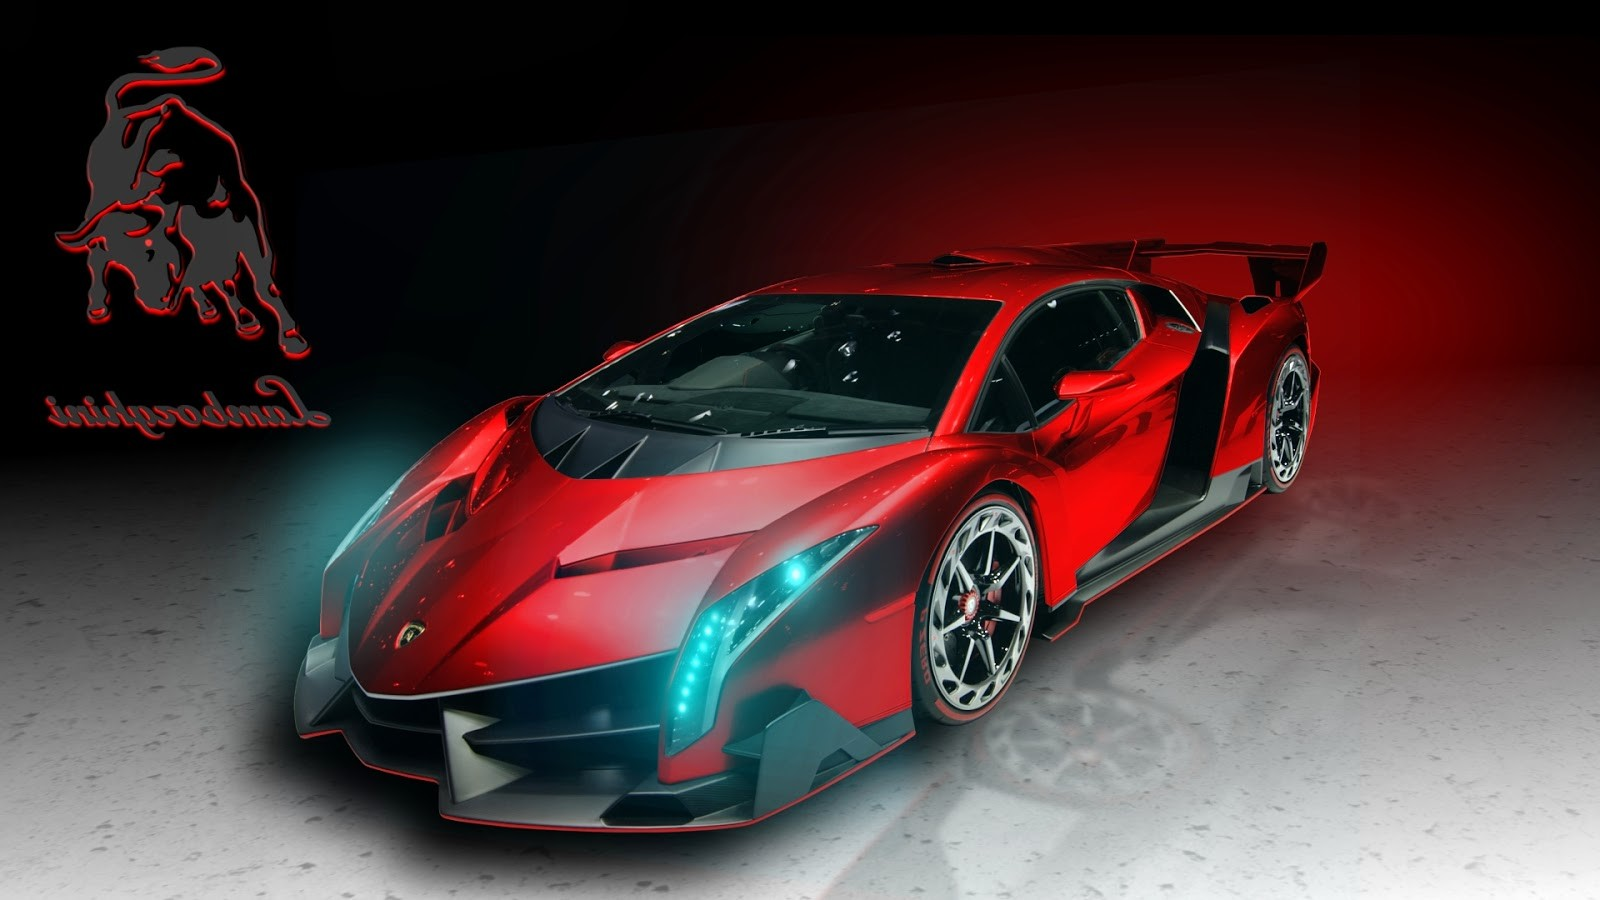 Hd wallpaper lamborghini veneno